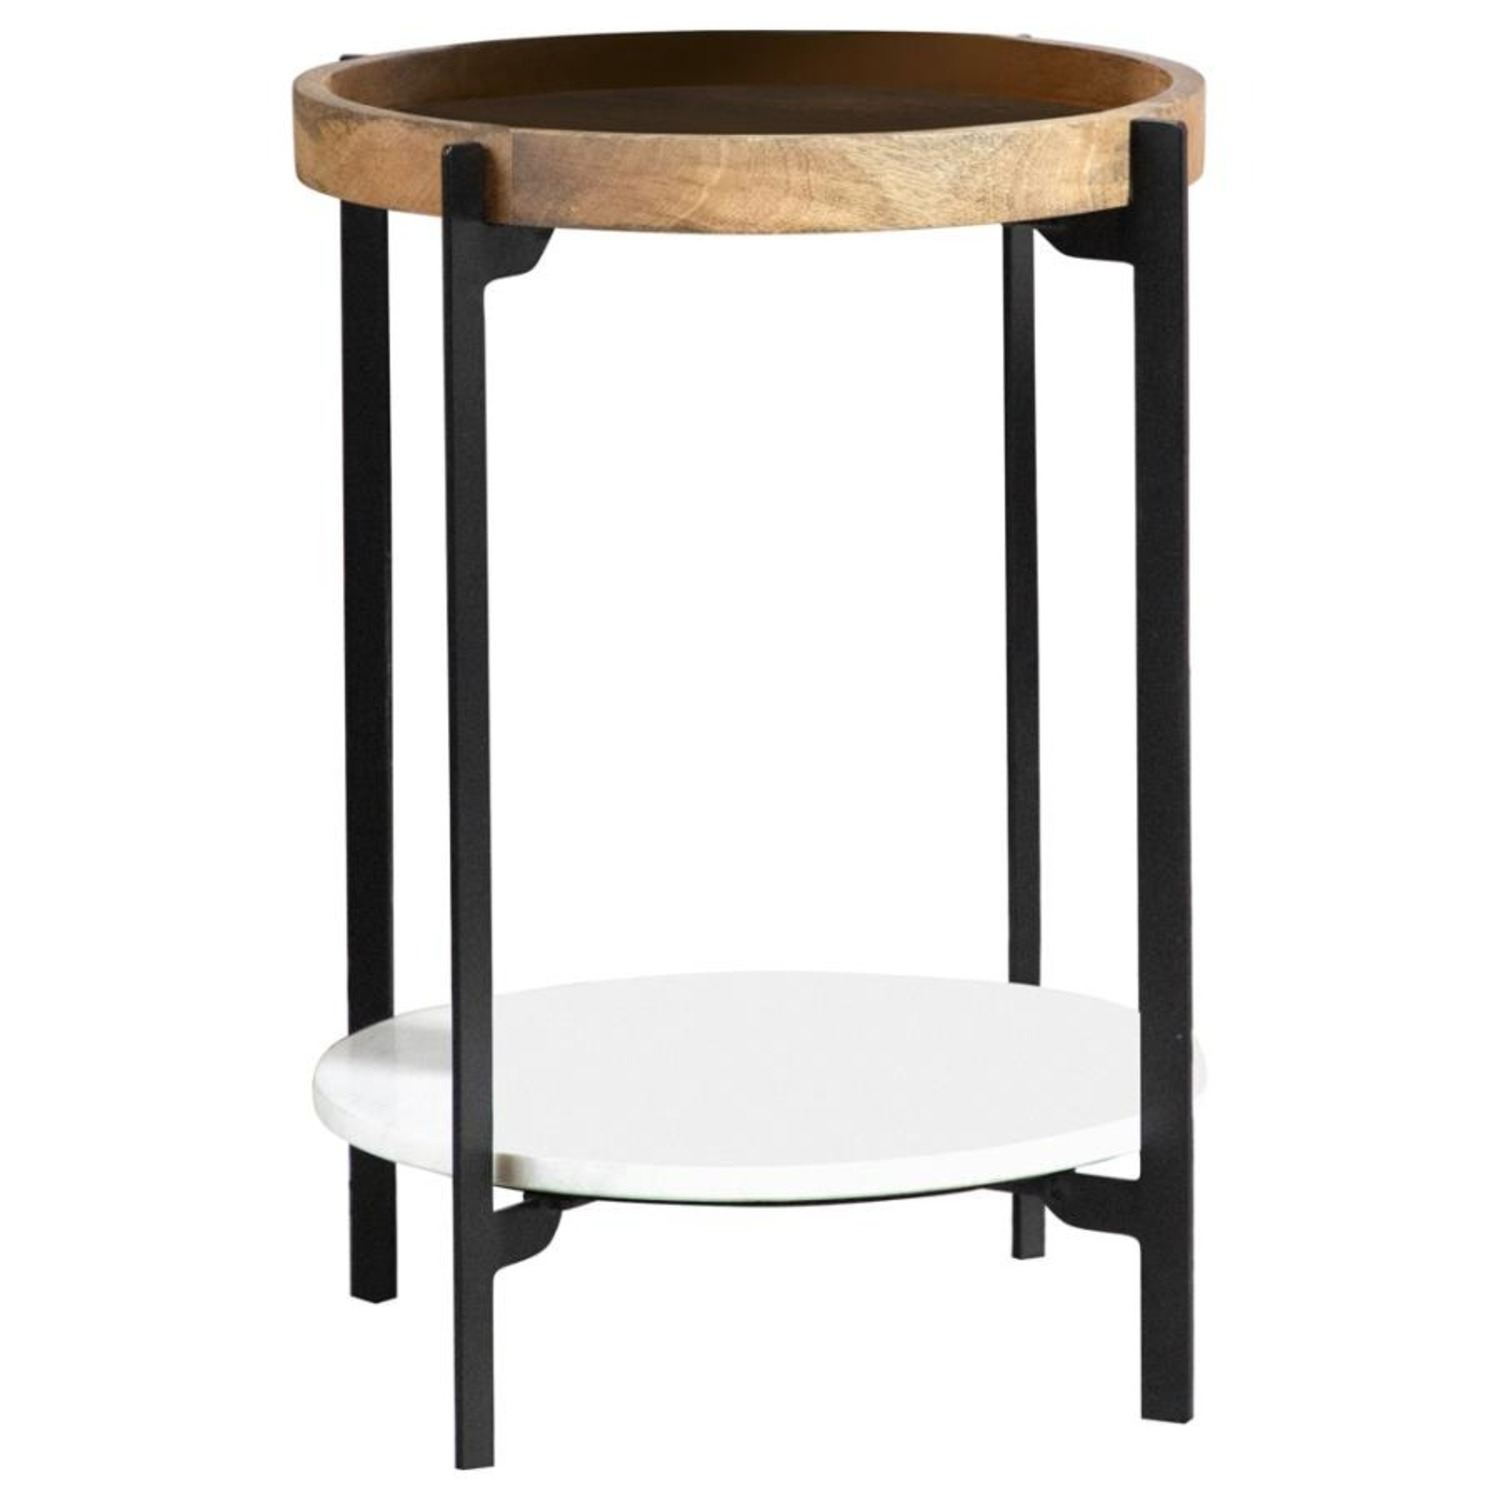 Accent Table In Solid Mango Top W/ Black Frame - image-0